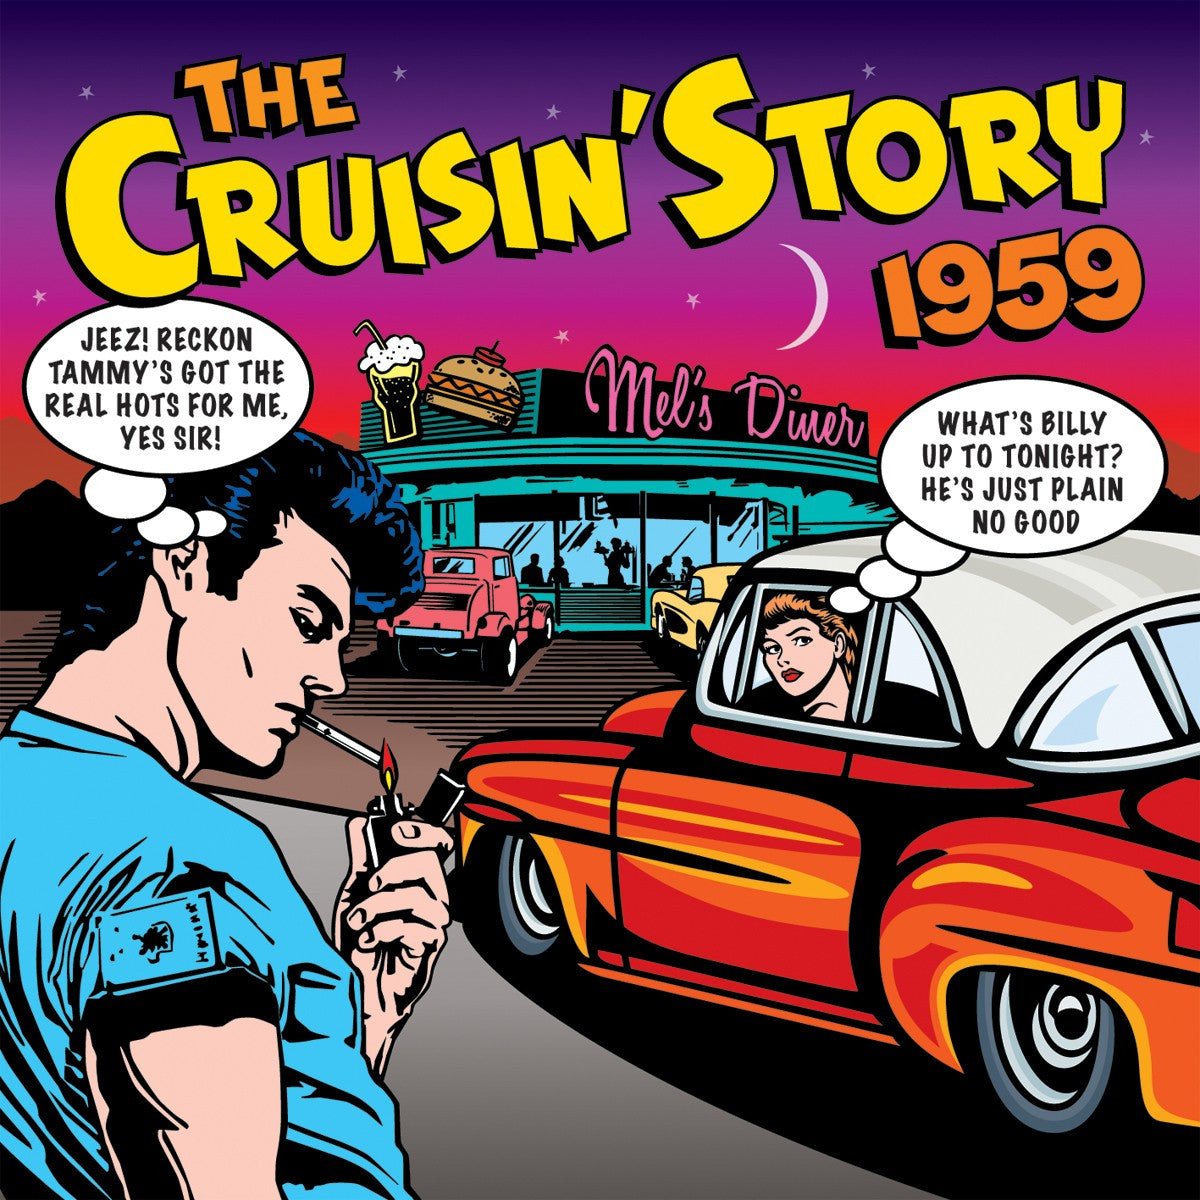 CRUISIN STORY 1959-VARIOUS ARTISTS 2CD *NEW*